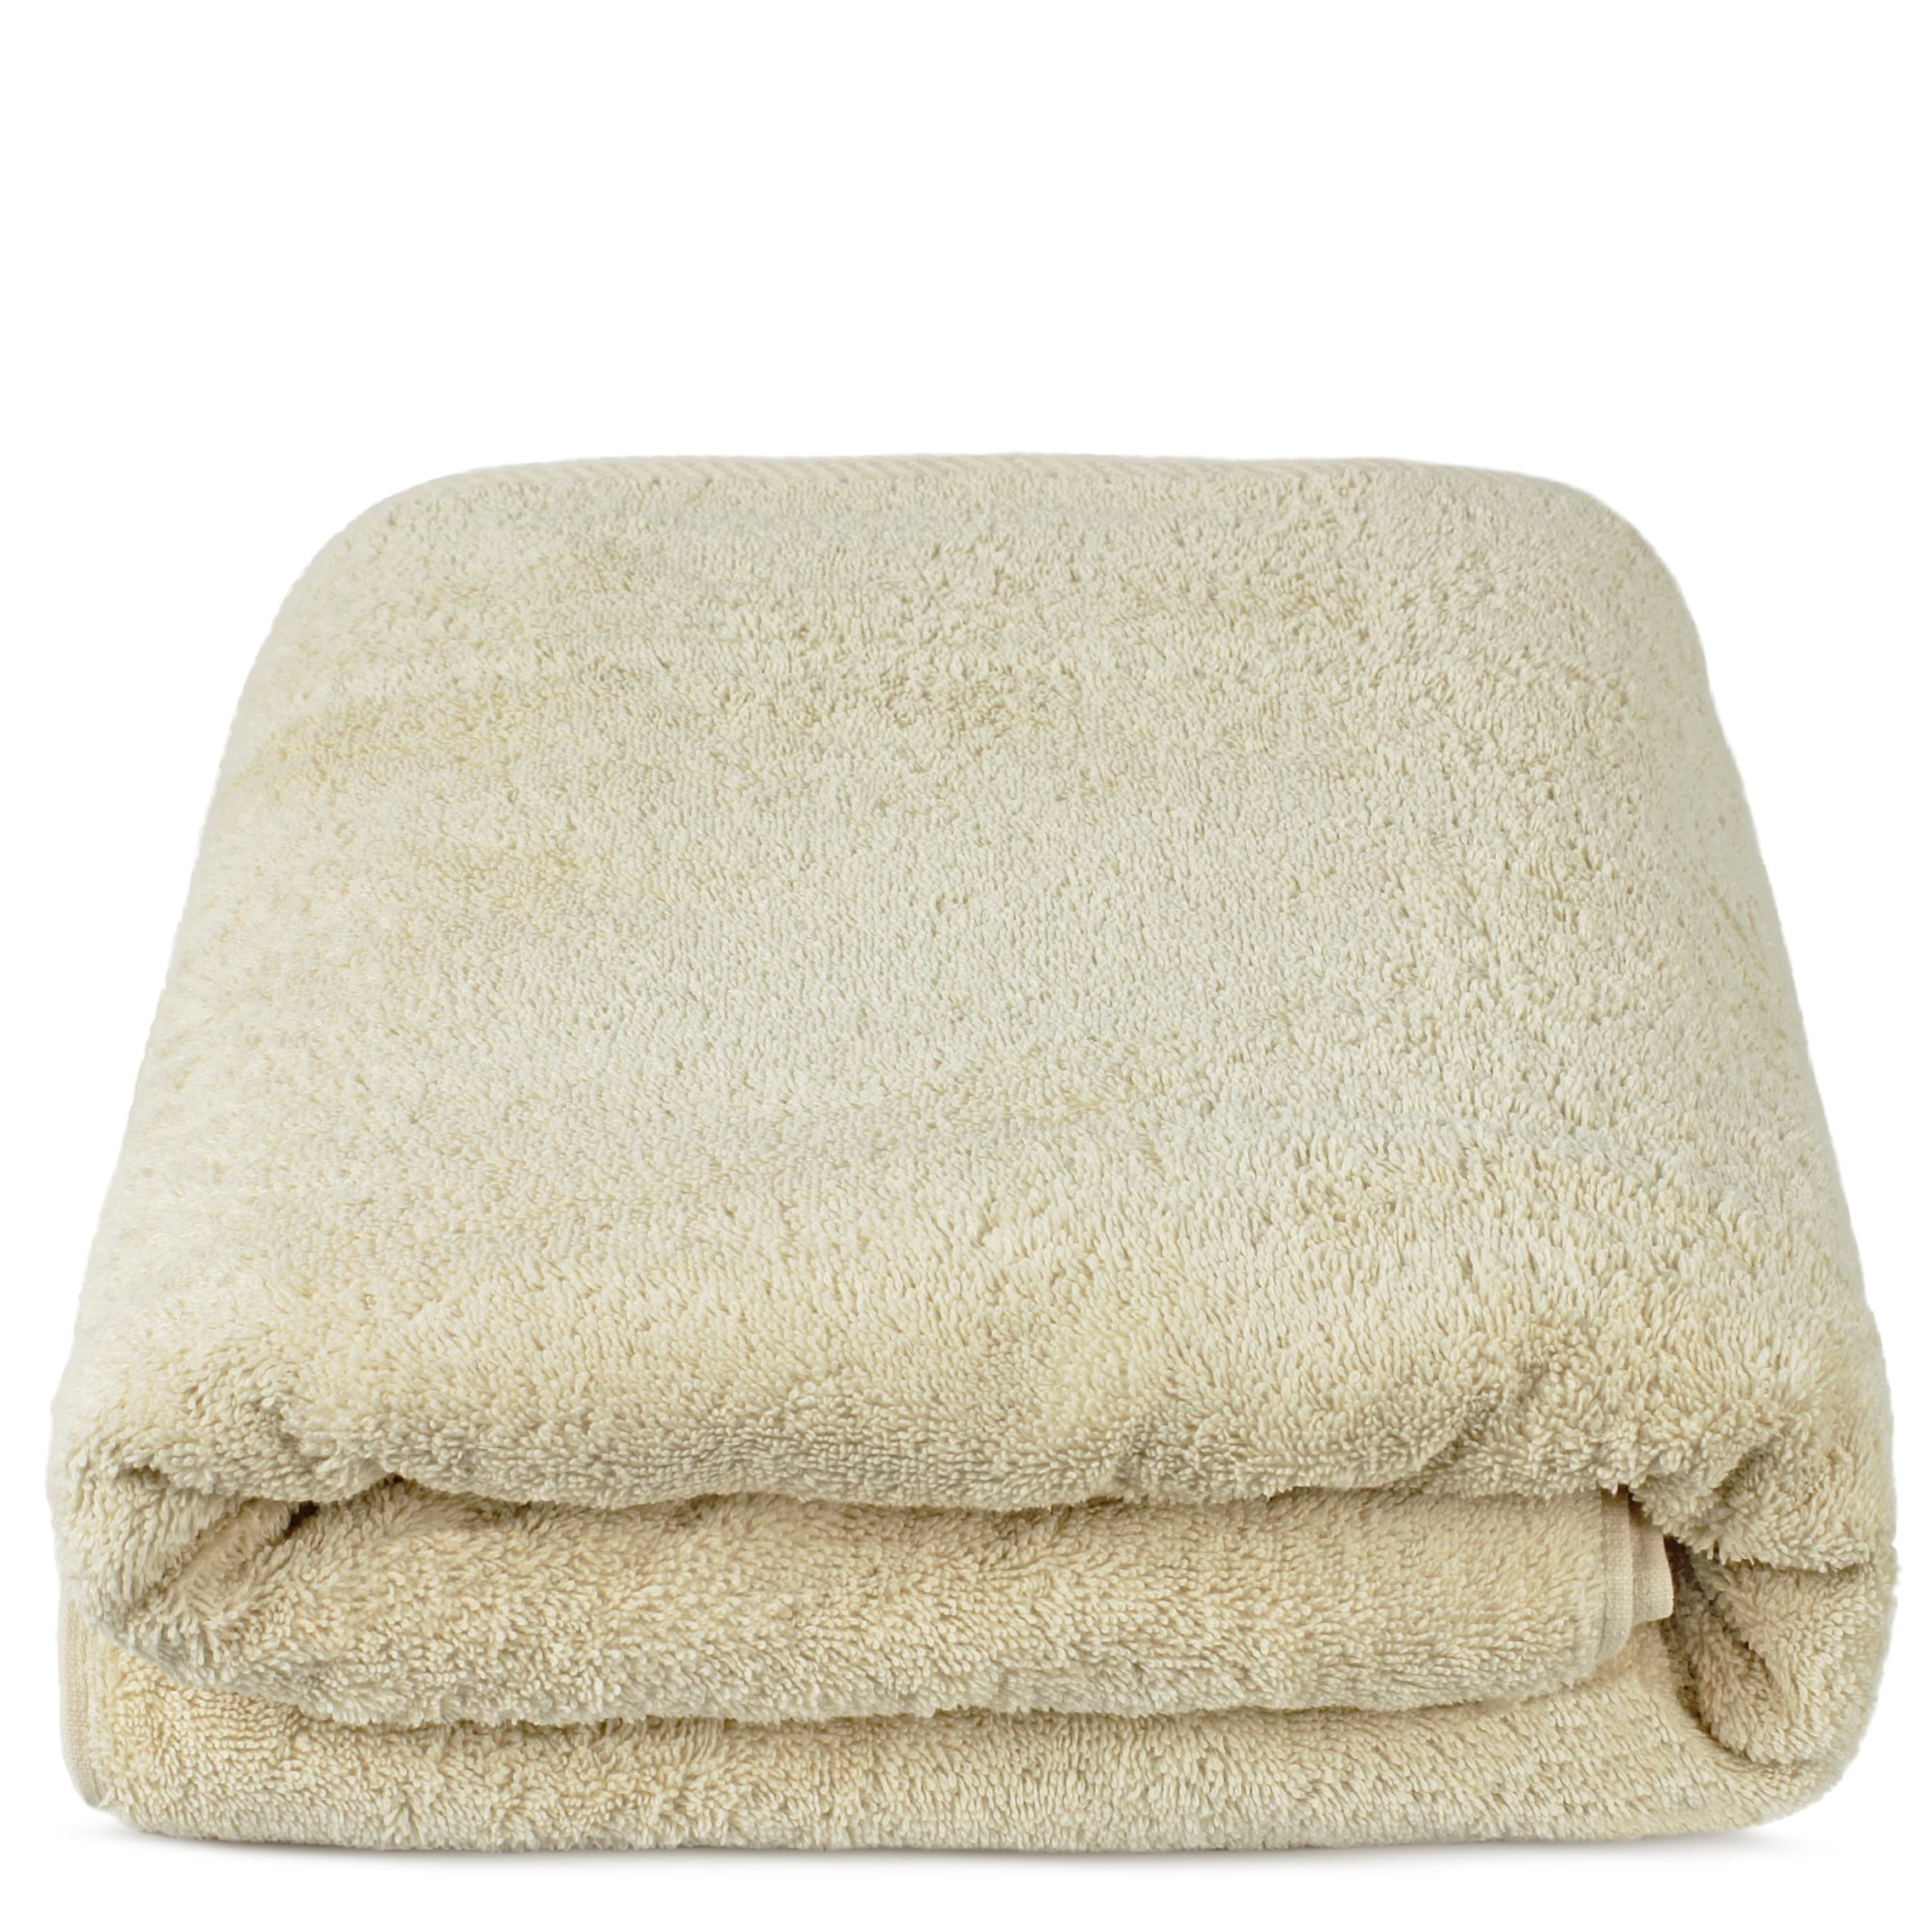 Oversize Premium Quality Bath Sheet, Extra Large 40x80 Inches, 100% Soft Turkish Cotton